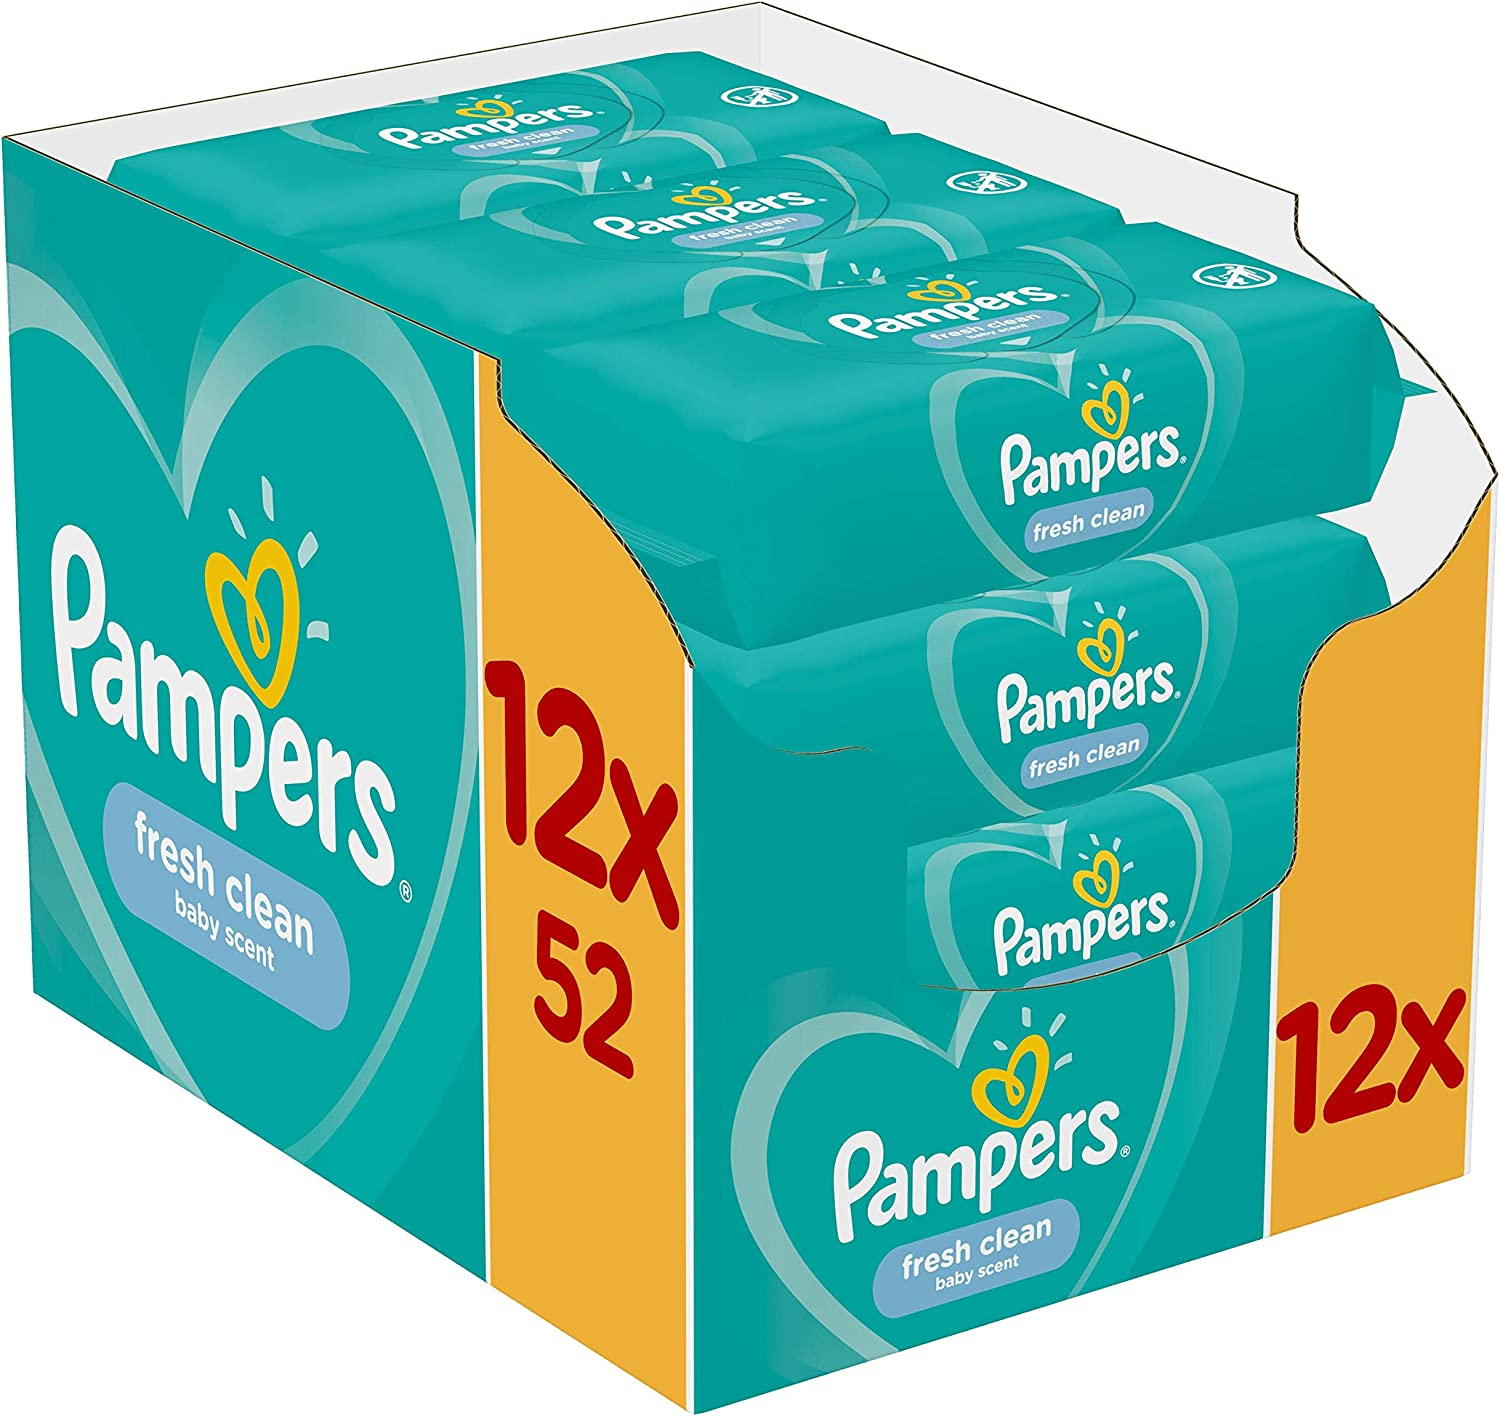 Pampers Fresh Clean Baby Wipes 12 Packs 47% OFF £7.67 PRE-ORDER @ Amazon